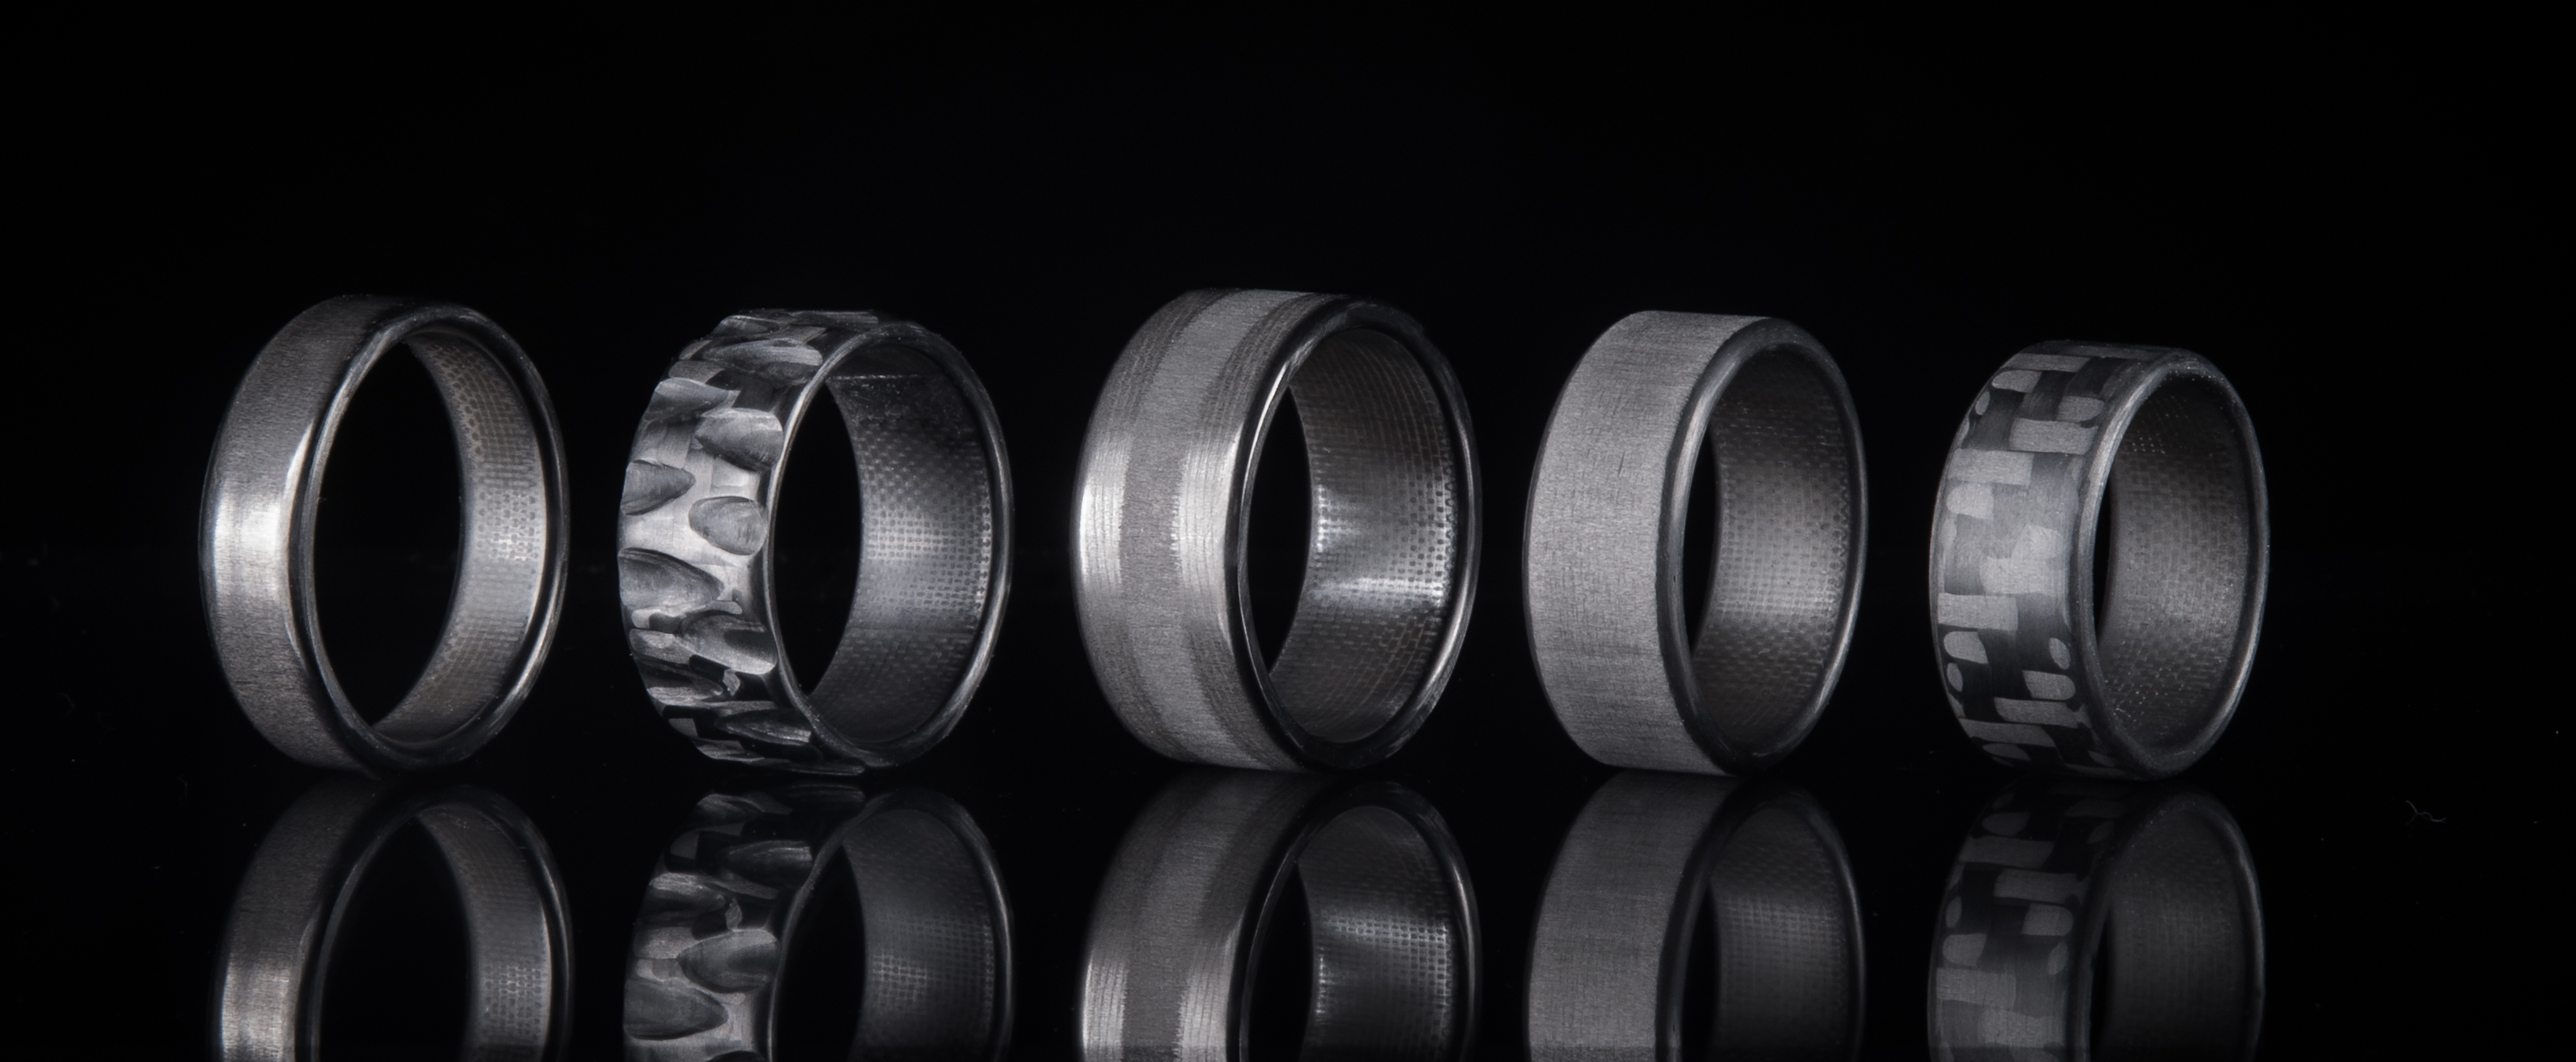 ring tire light steel rings wedding slide amor stainless products jennywu by lace previous